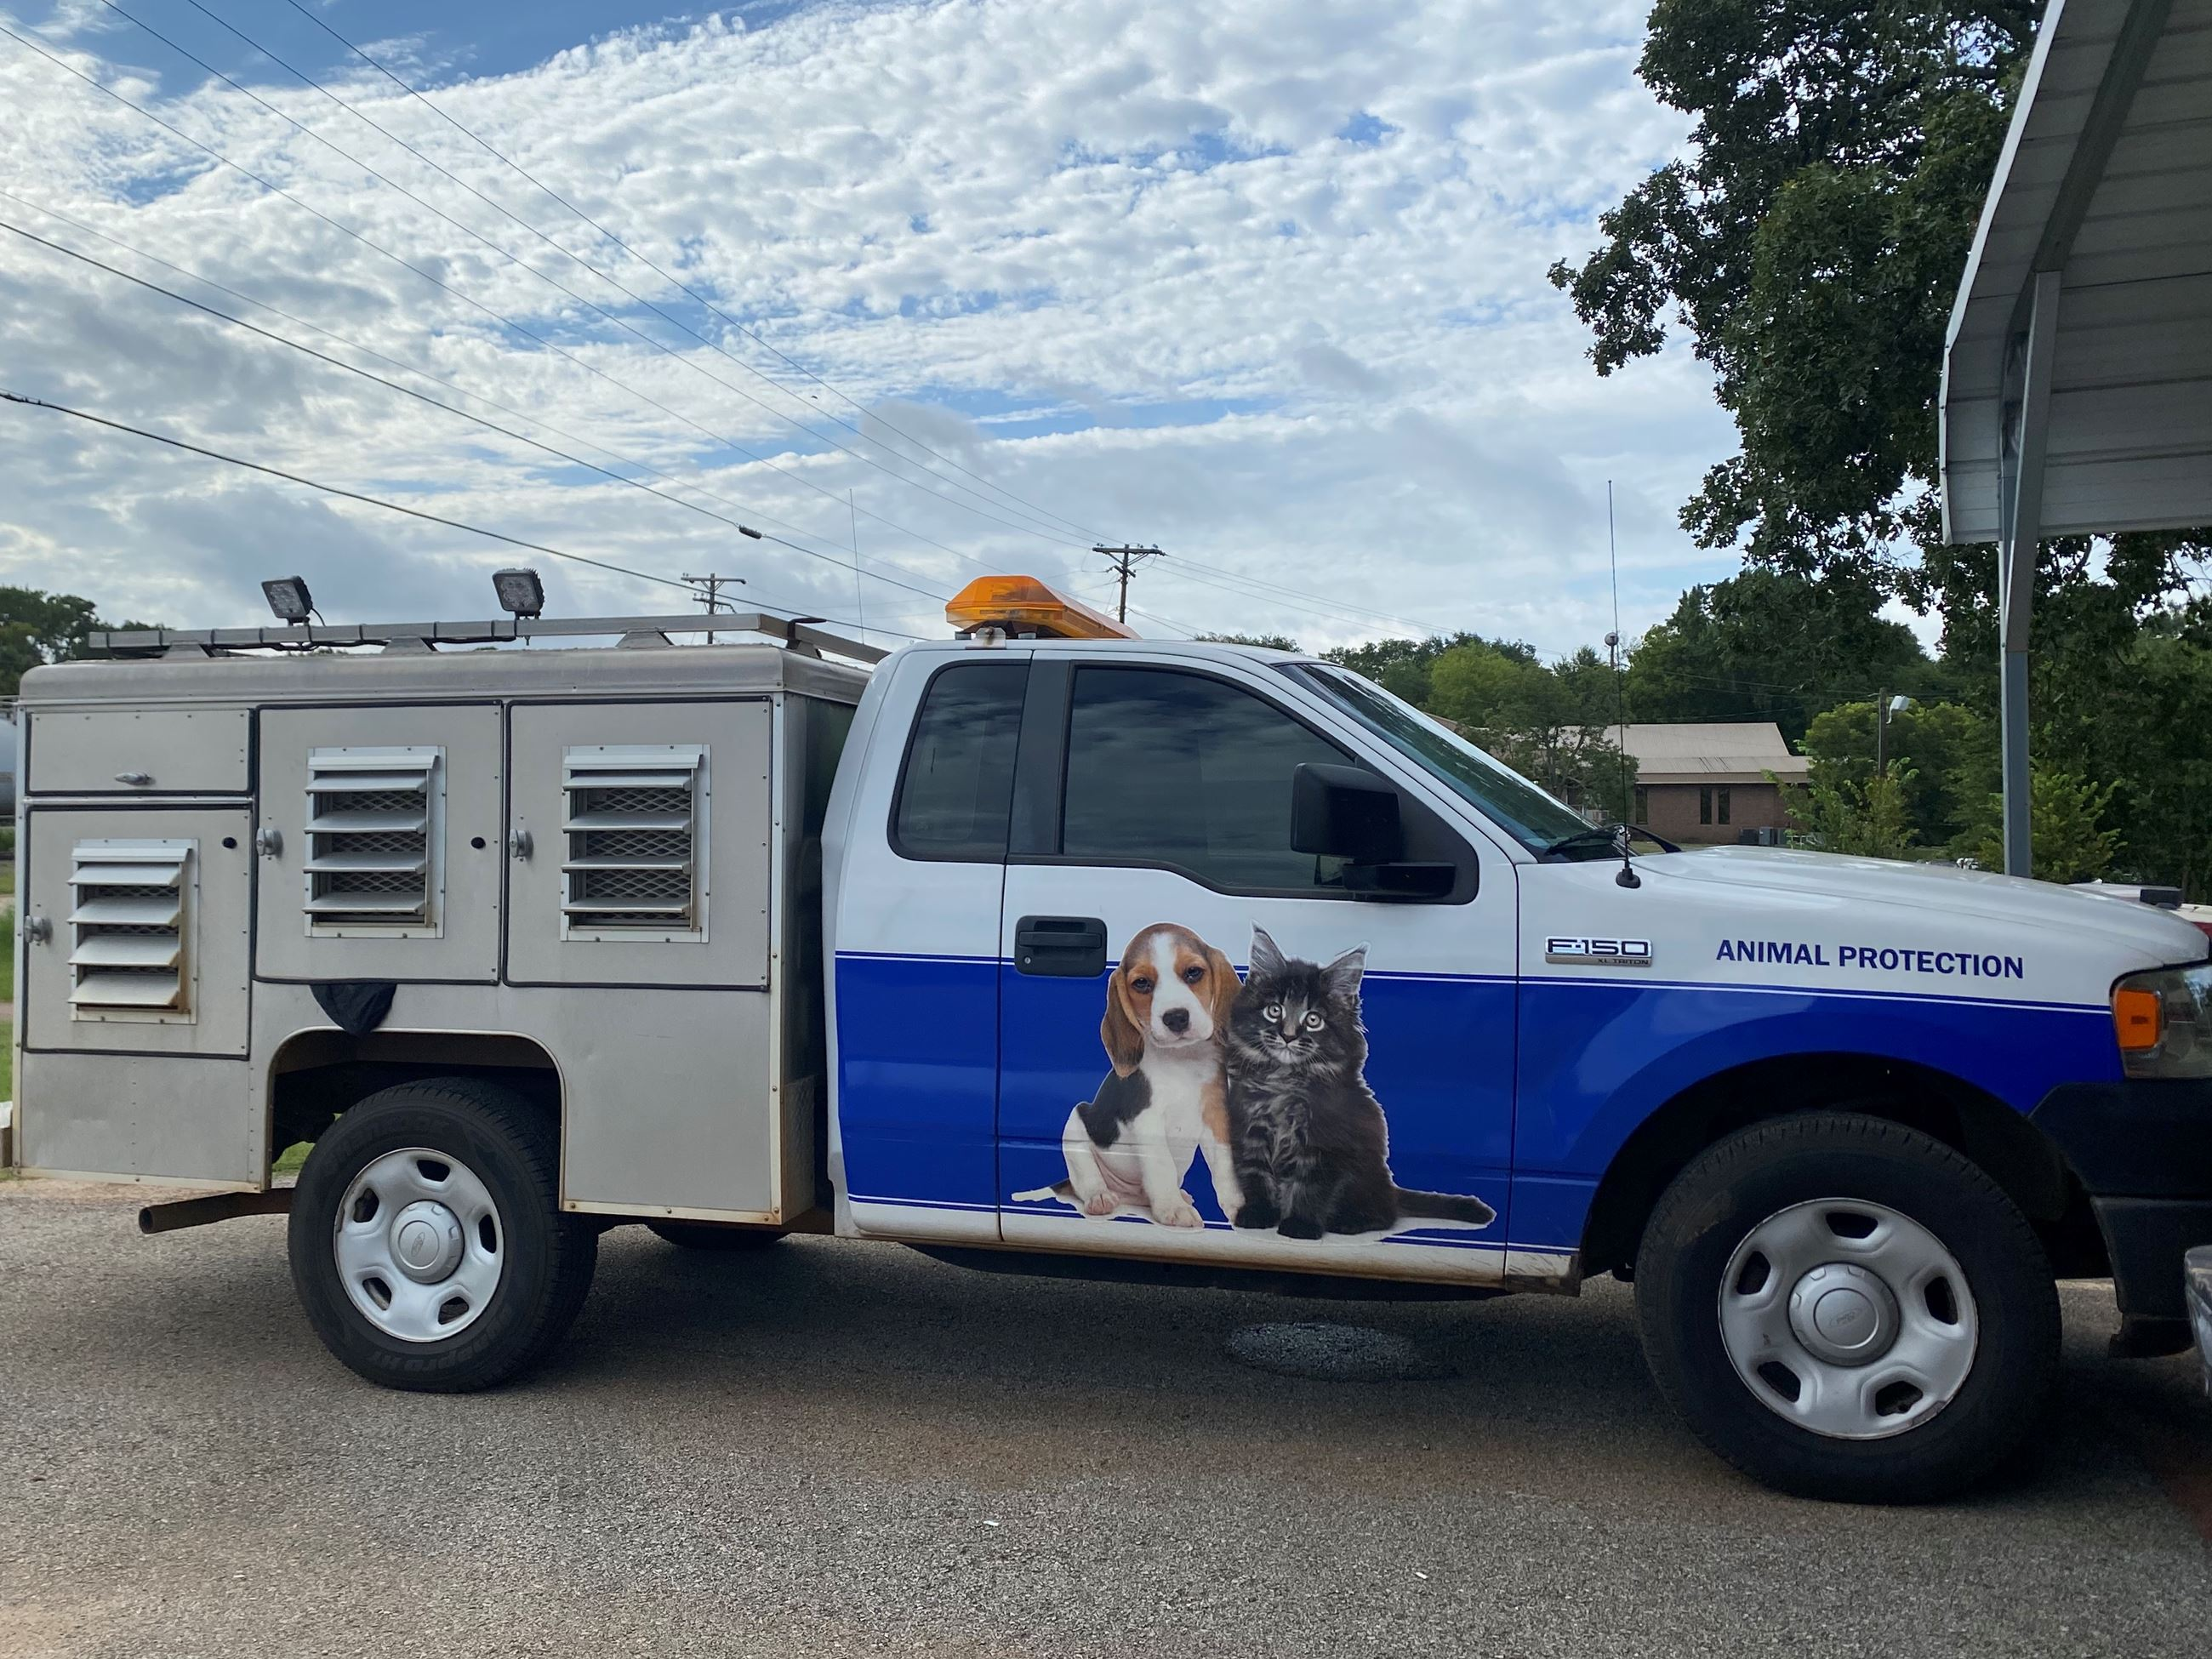 Animal Protection Vehicle